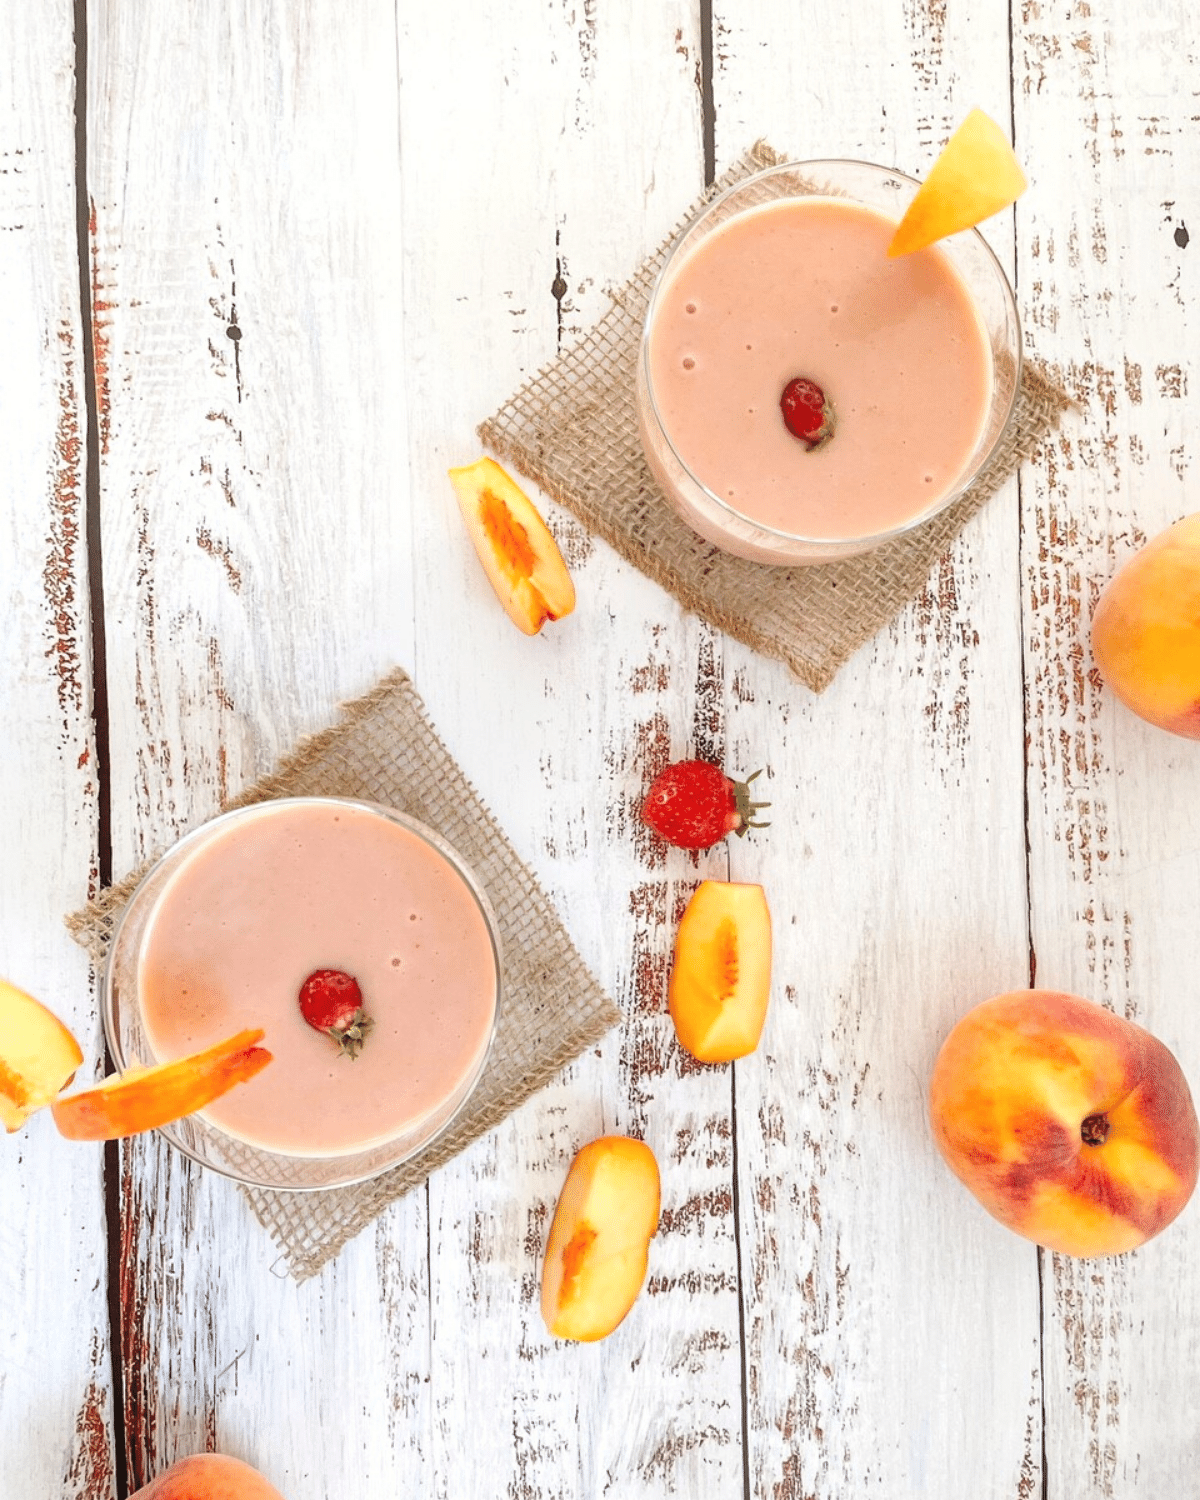 Two glasses of strawberry peach smoothies in glasses, garnished with strawberries, and sliced peaches on the table beside them